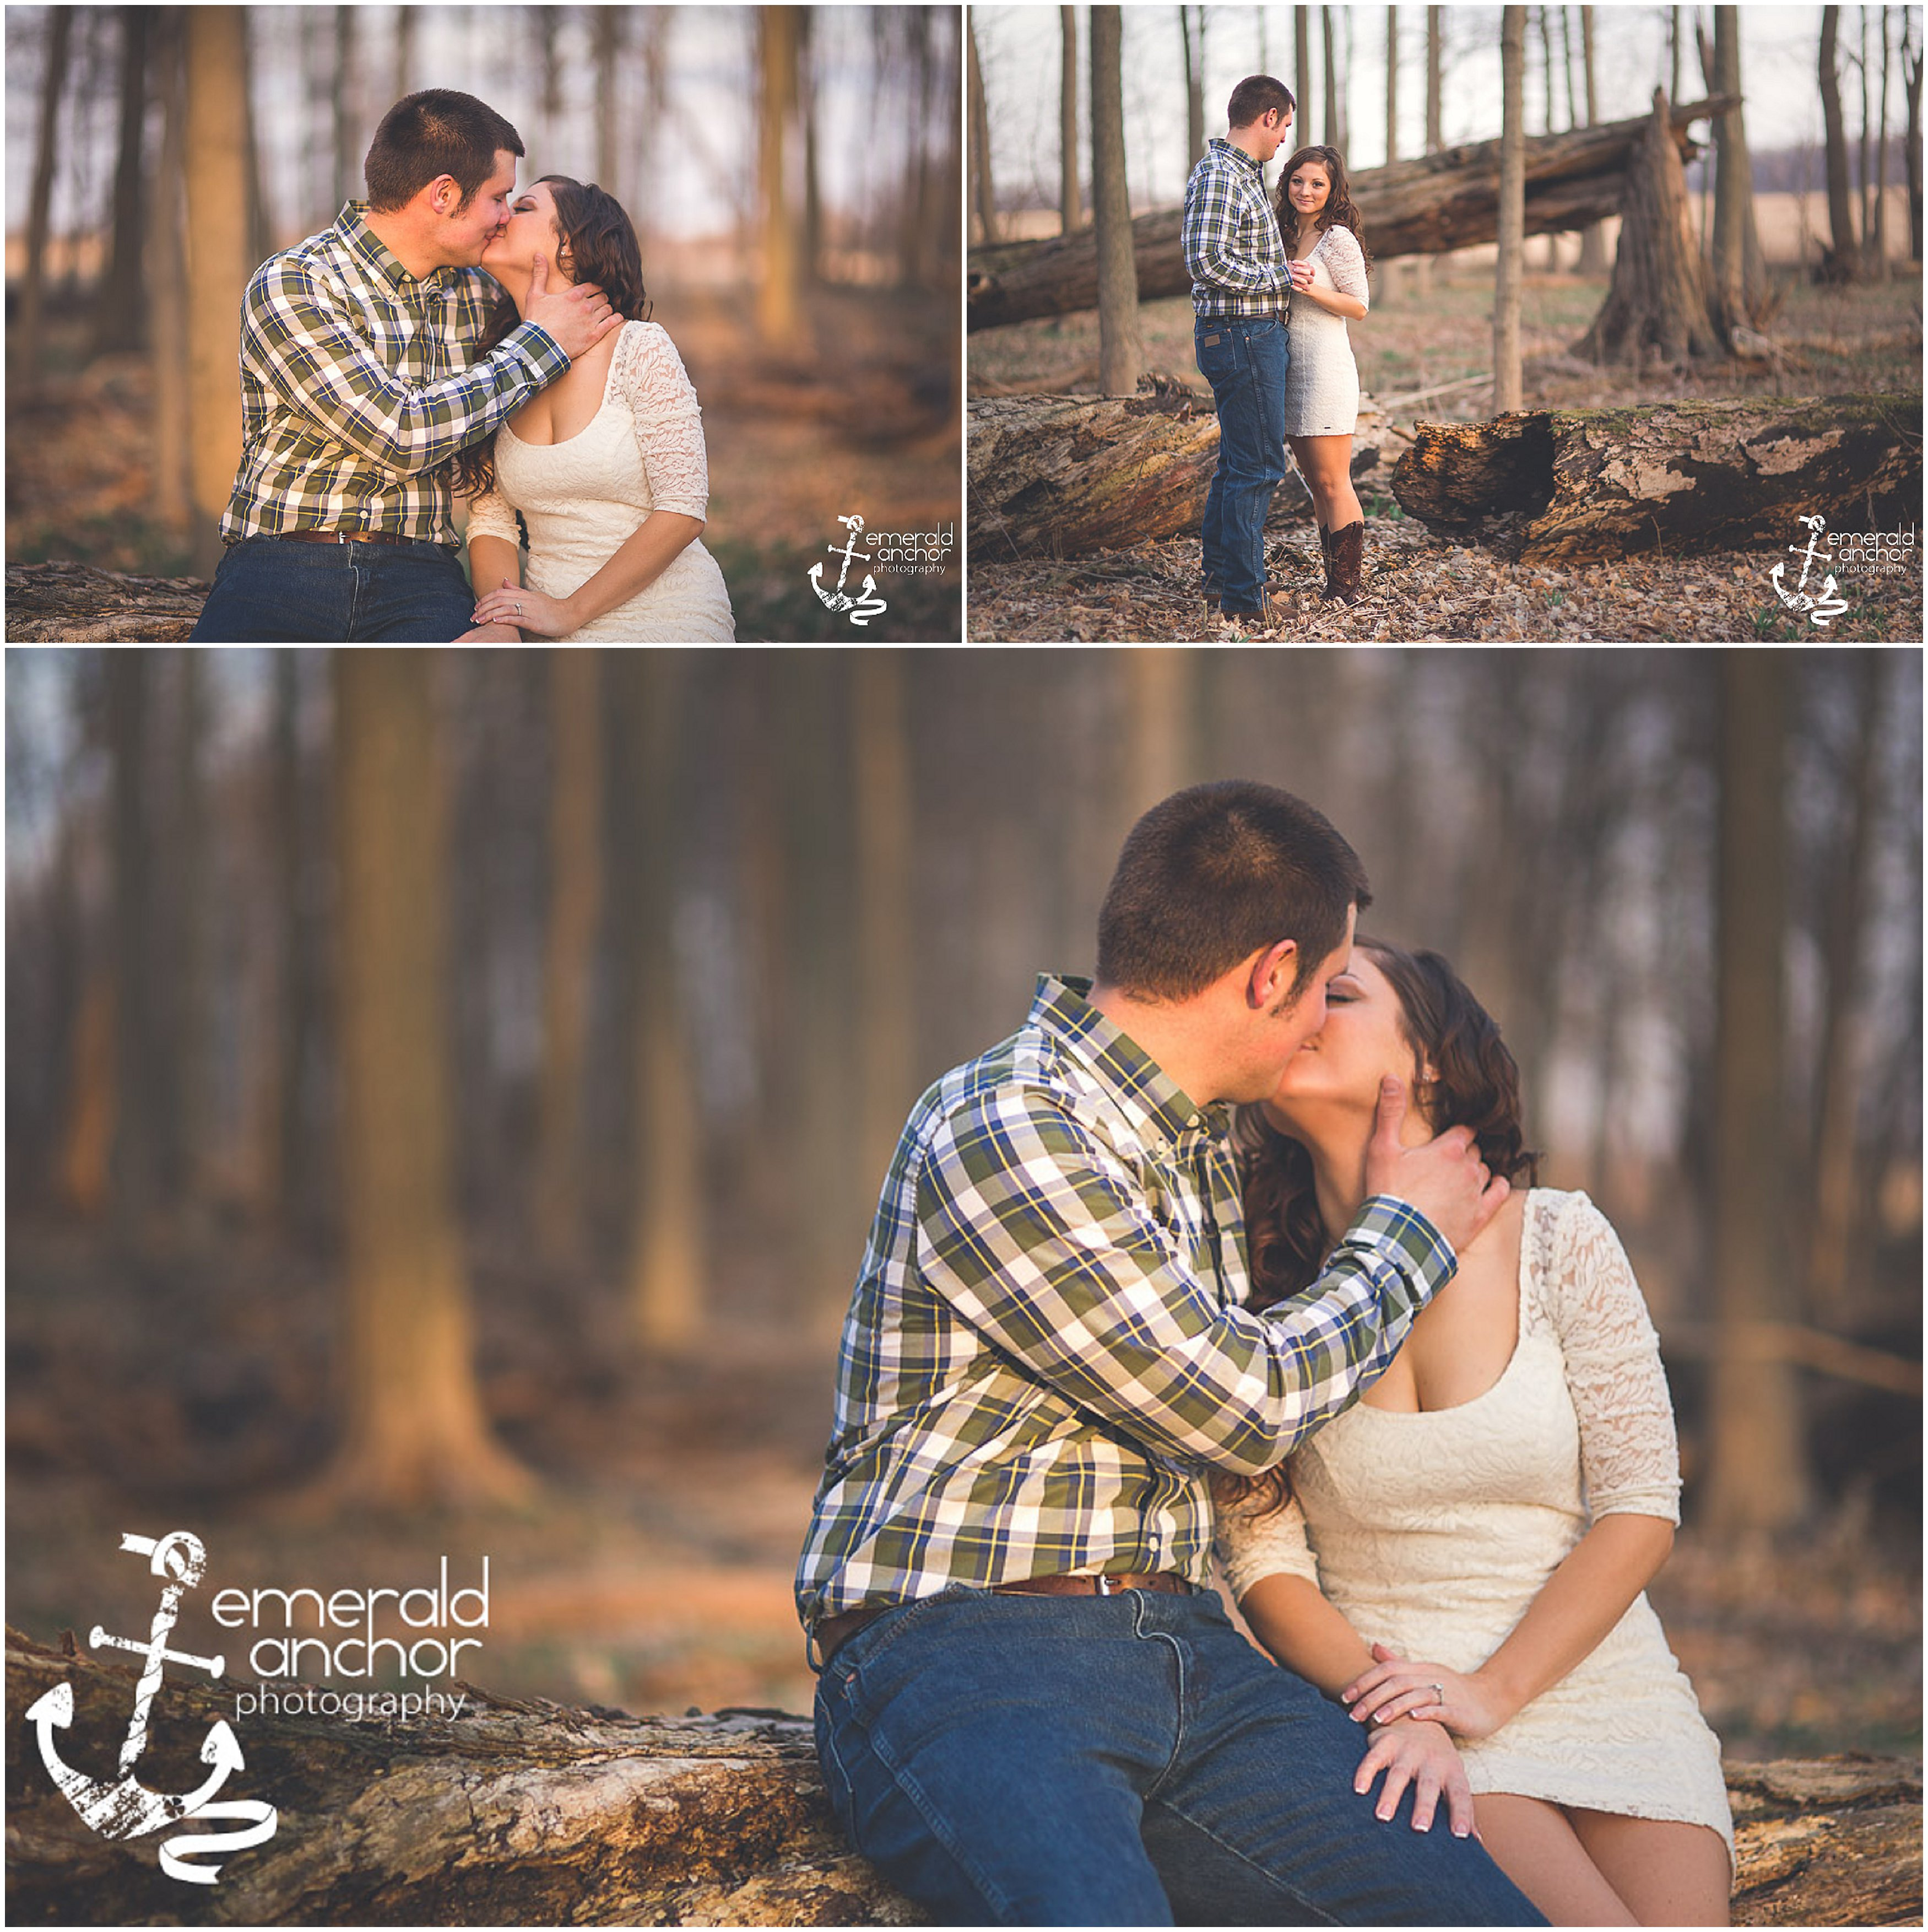 Emerald Anchor Photography Engagement Pictures (12)